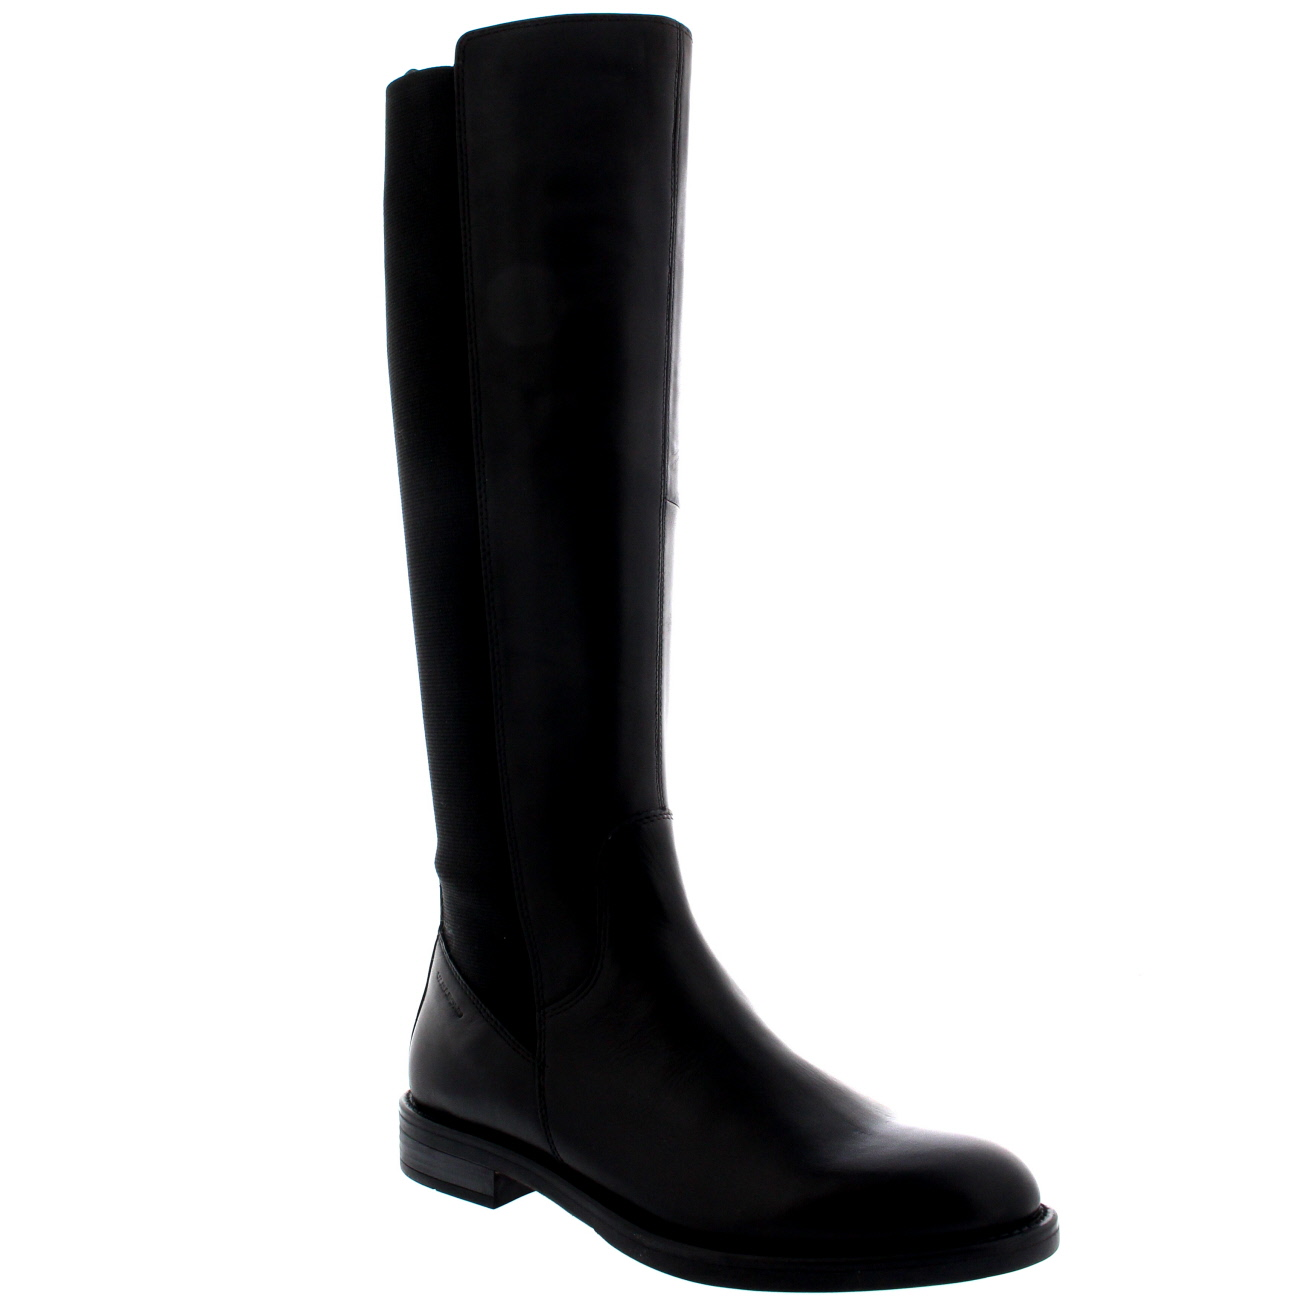 Vagabond Amina Knee High Boots